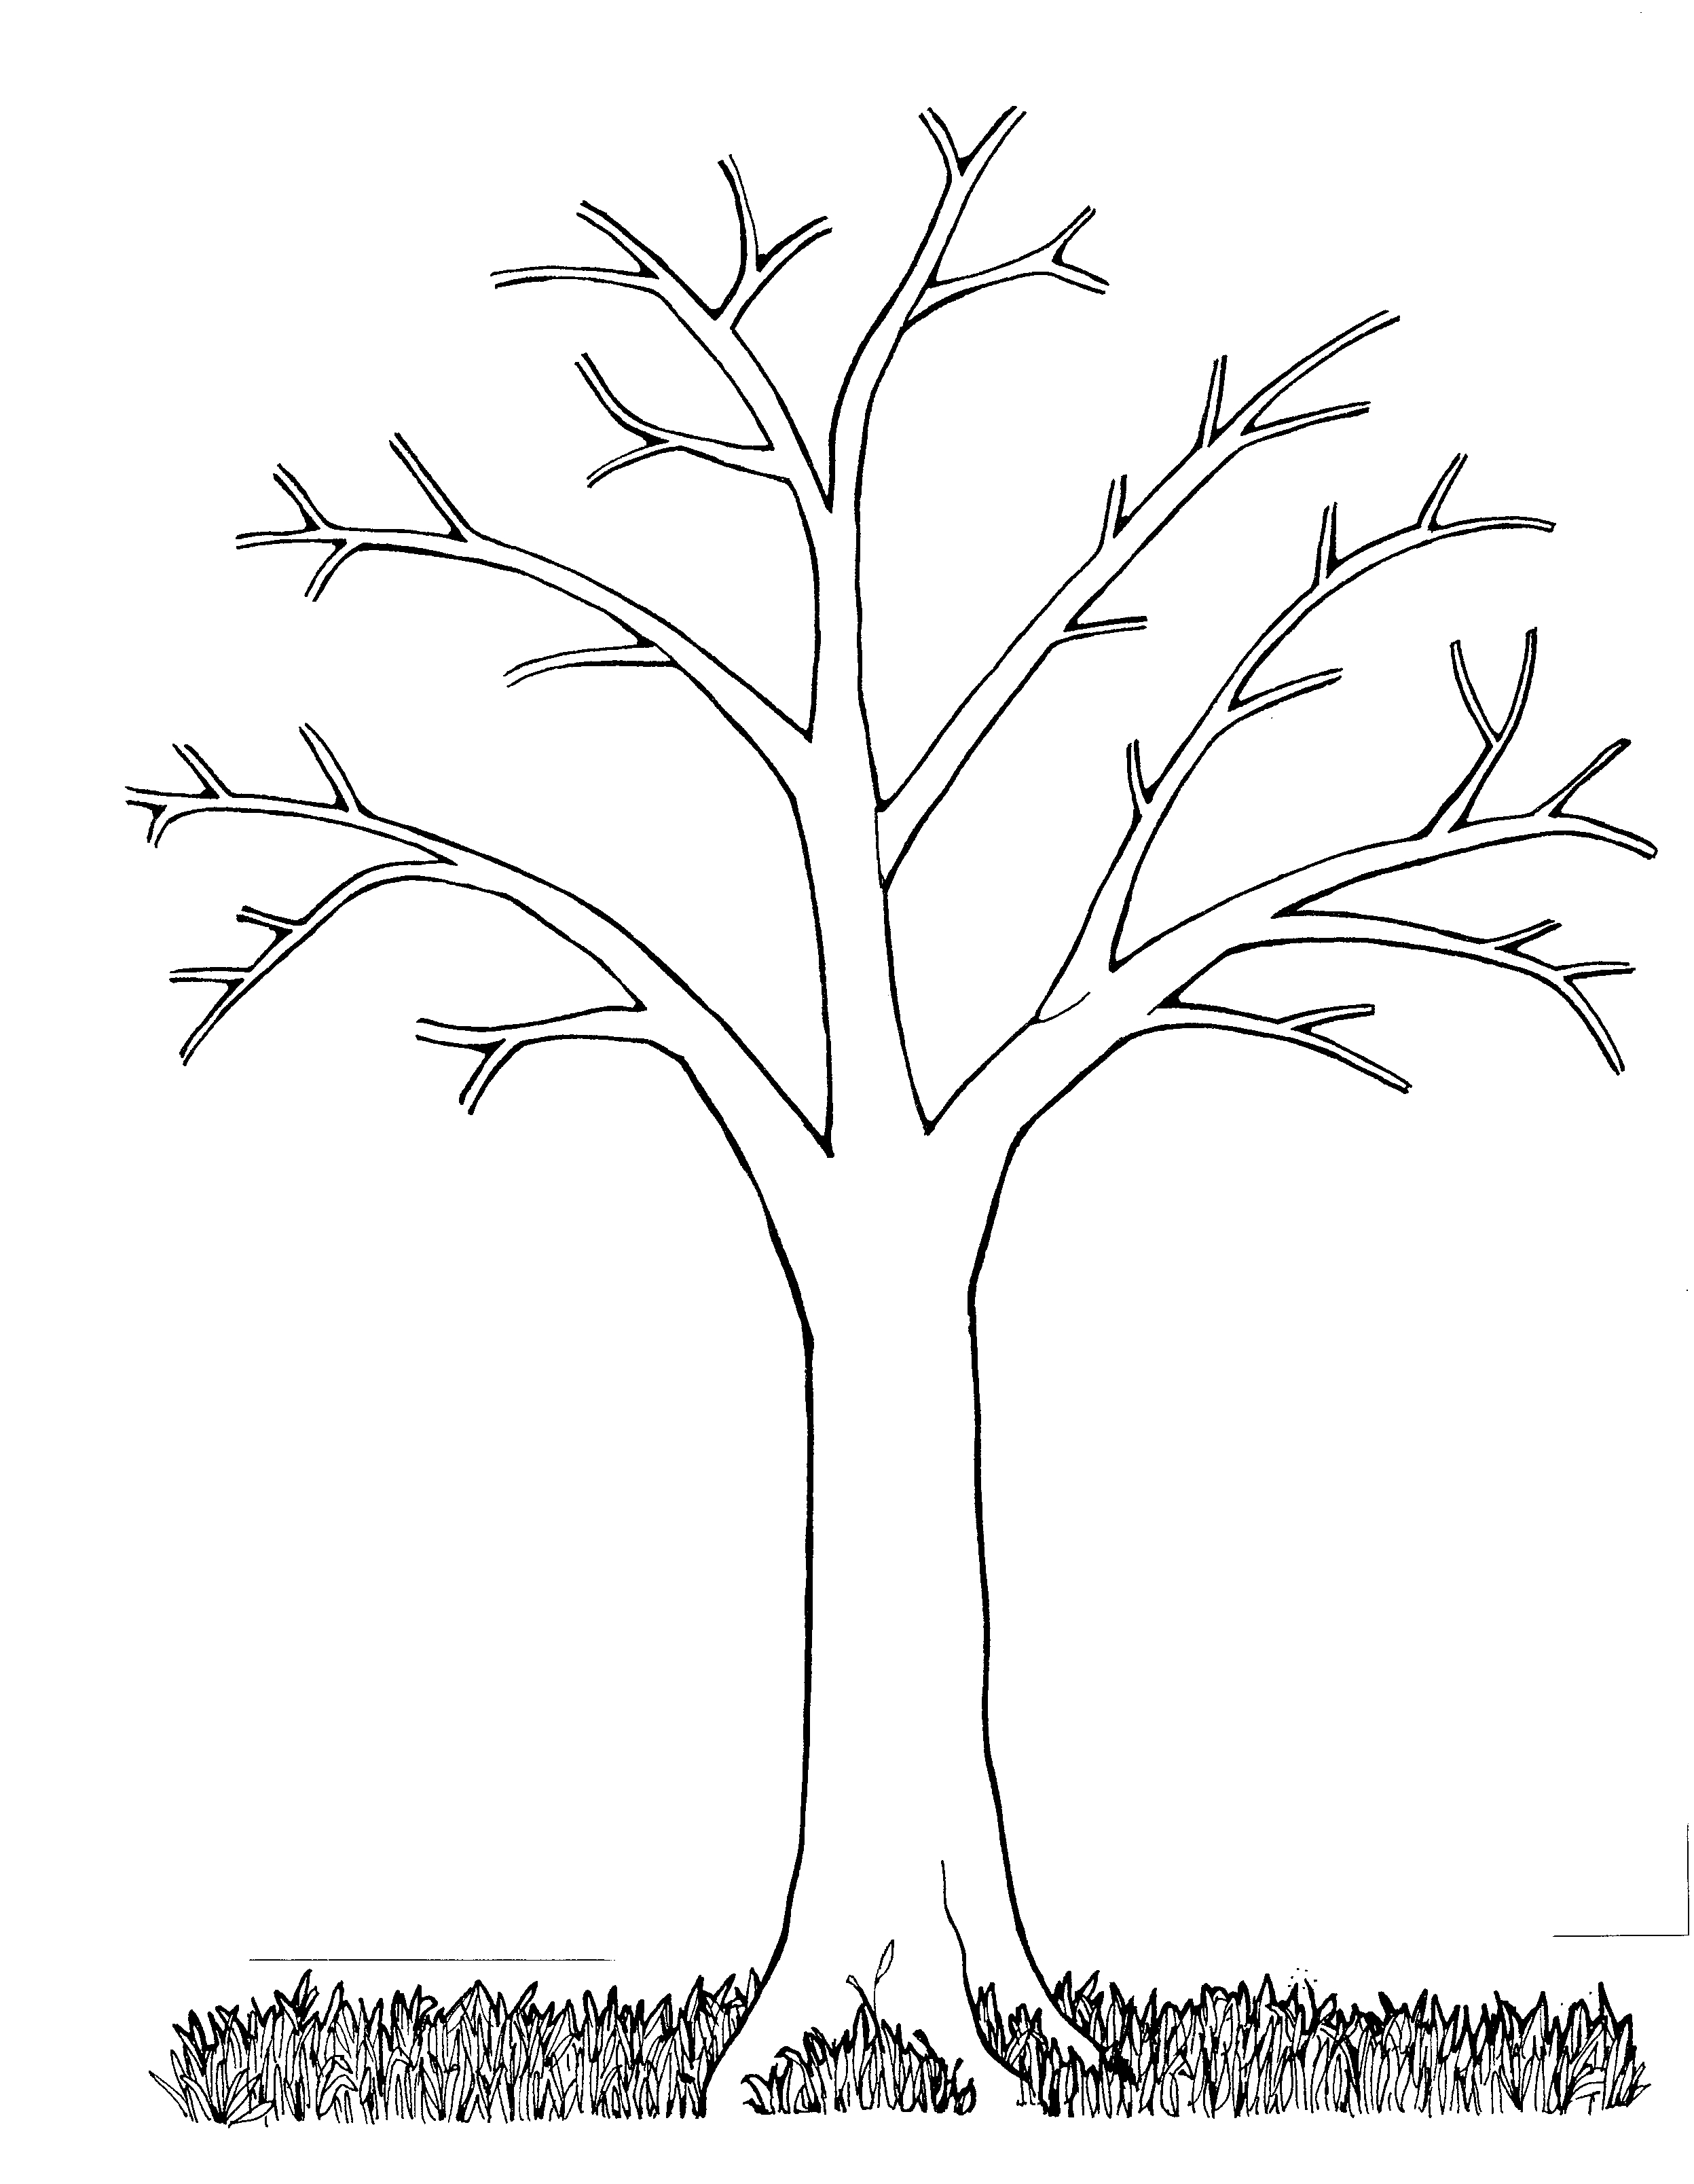 Tree Trunk Line Drawing At GetDrawings.c #19 - PNG Images - PNGio